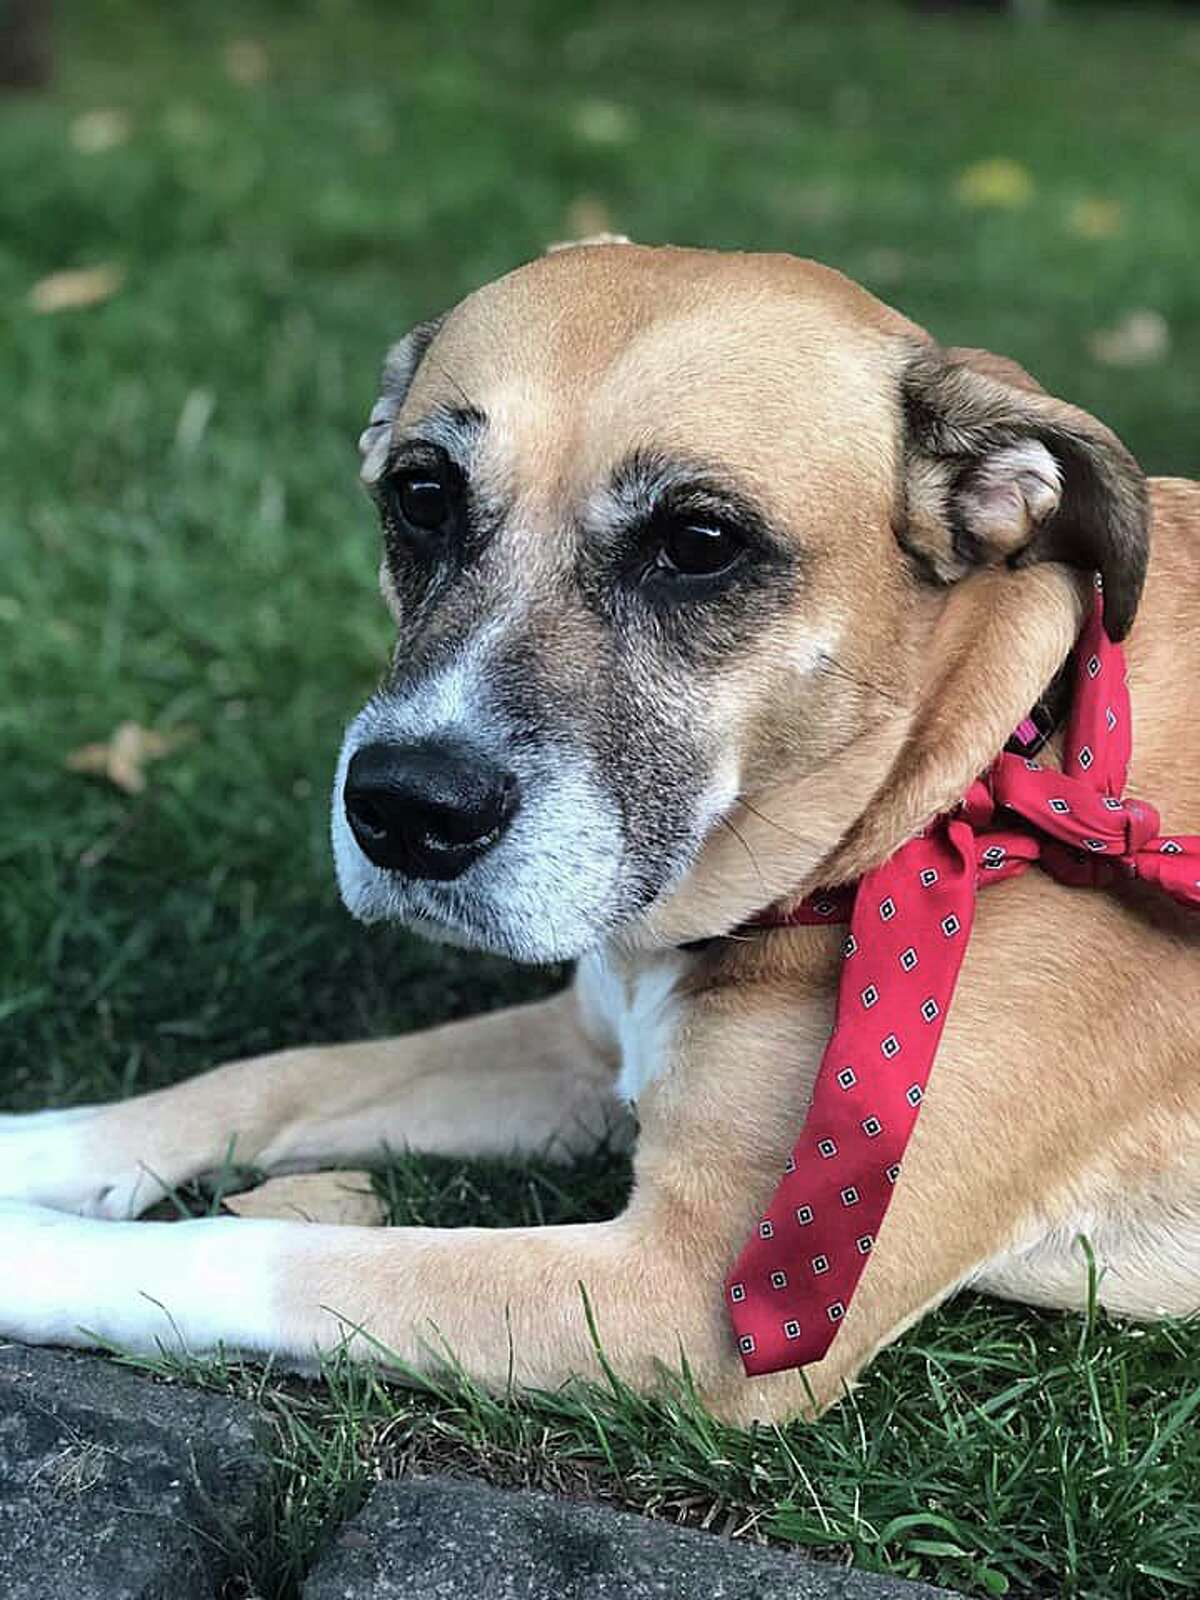 West Haven Animal Control said a dog was found tied to a pole - with a necktie - at an apartment complex on Campbell Avenue on Saturday, July 27, 2019.